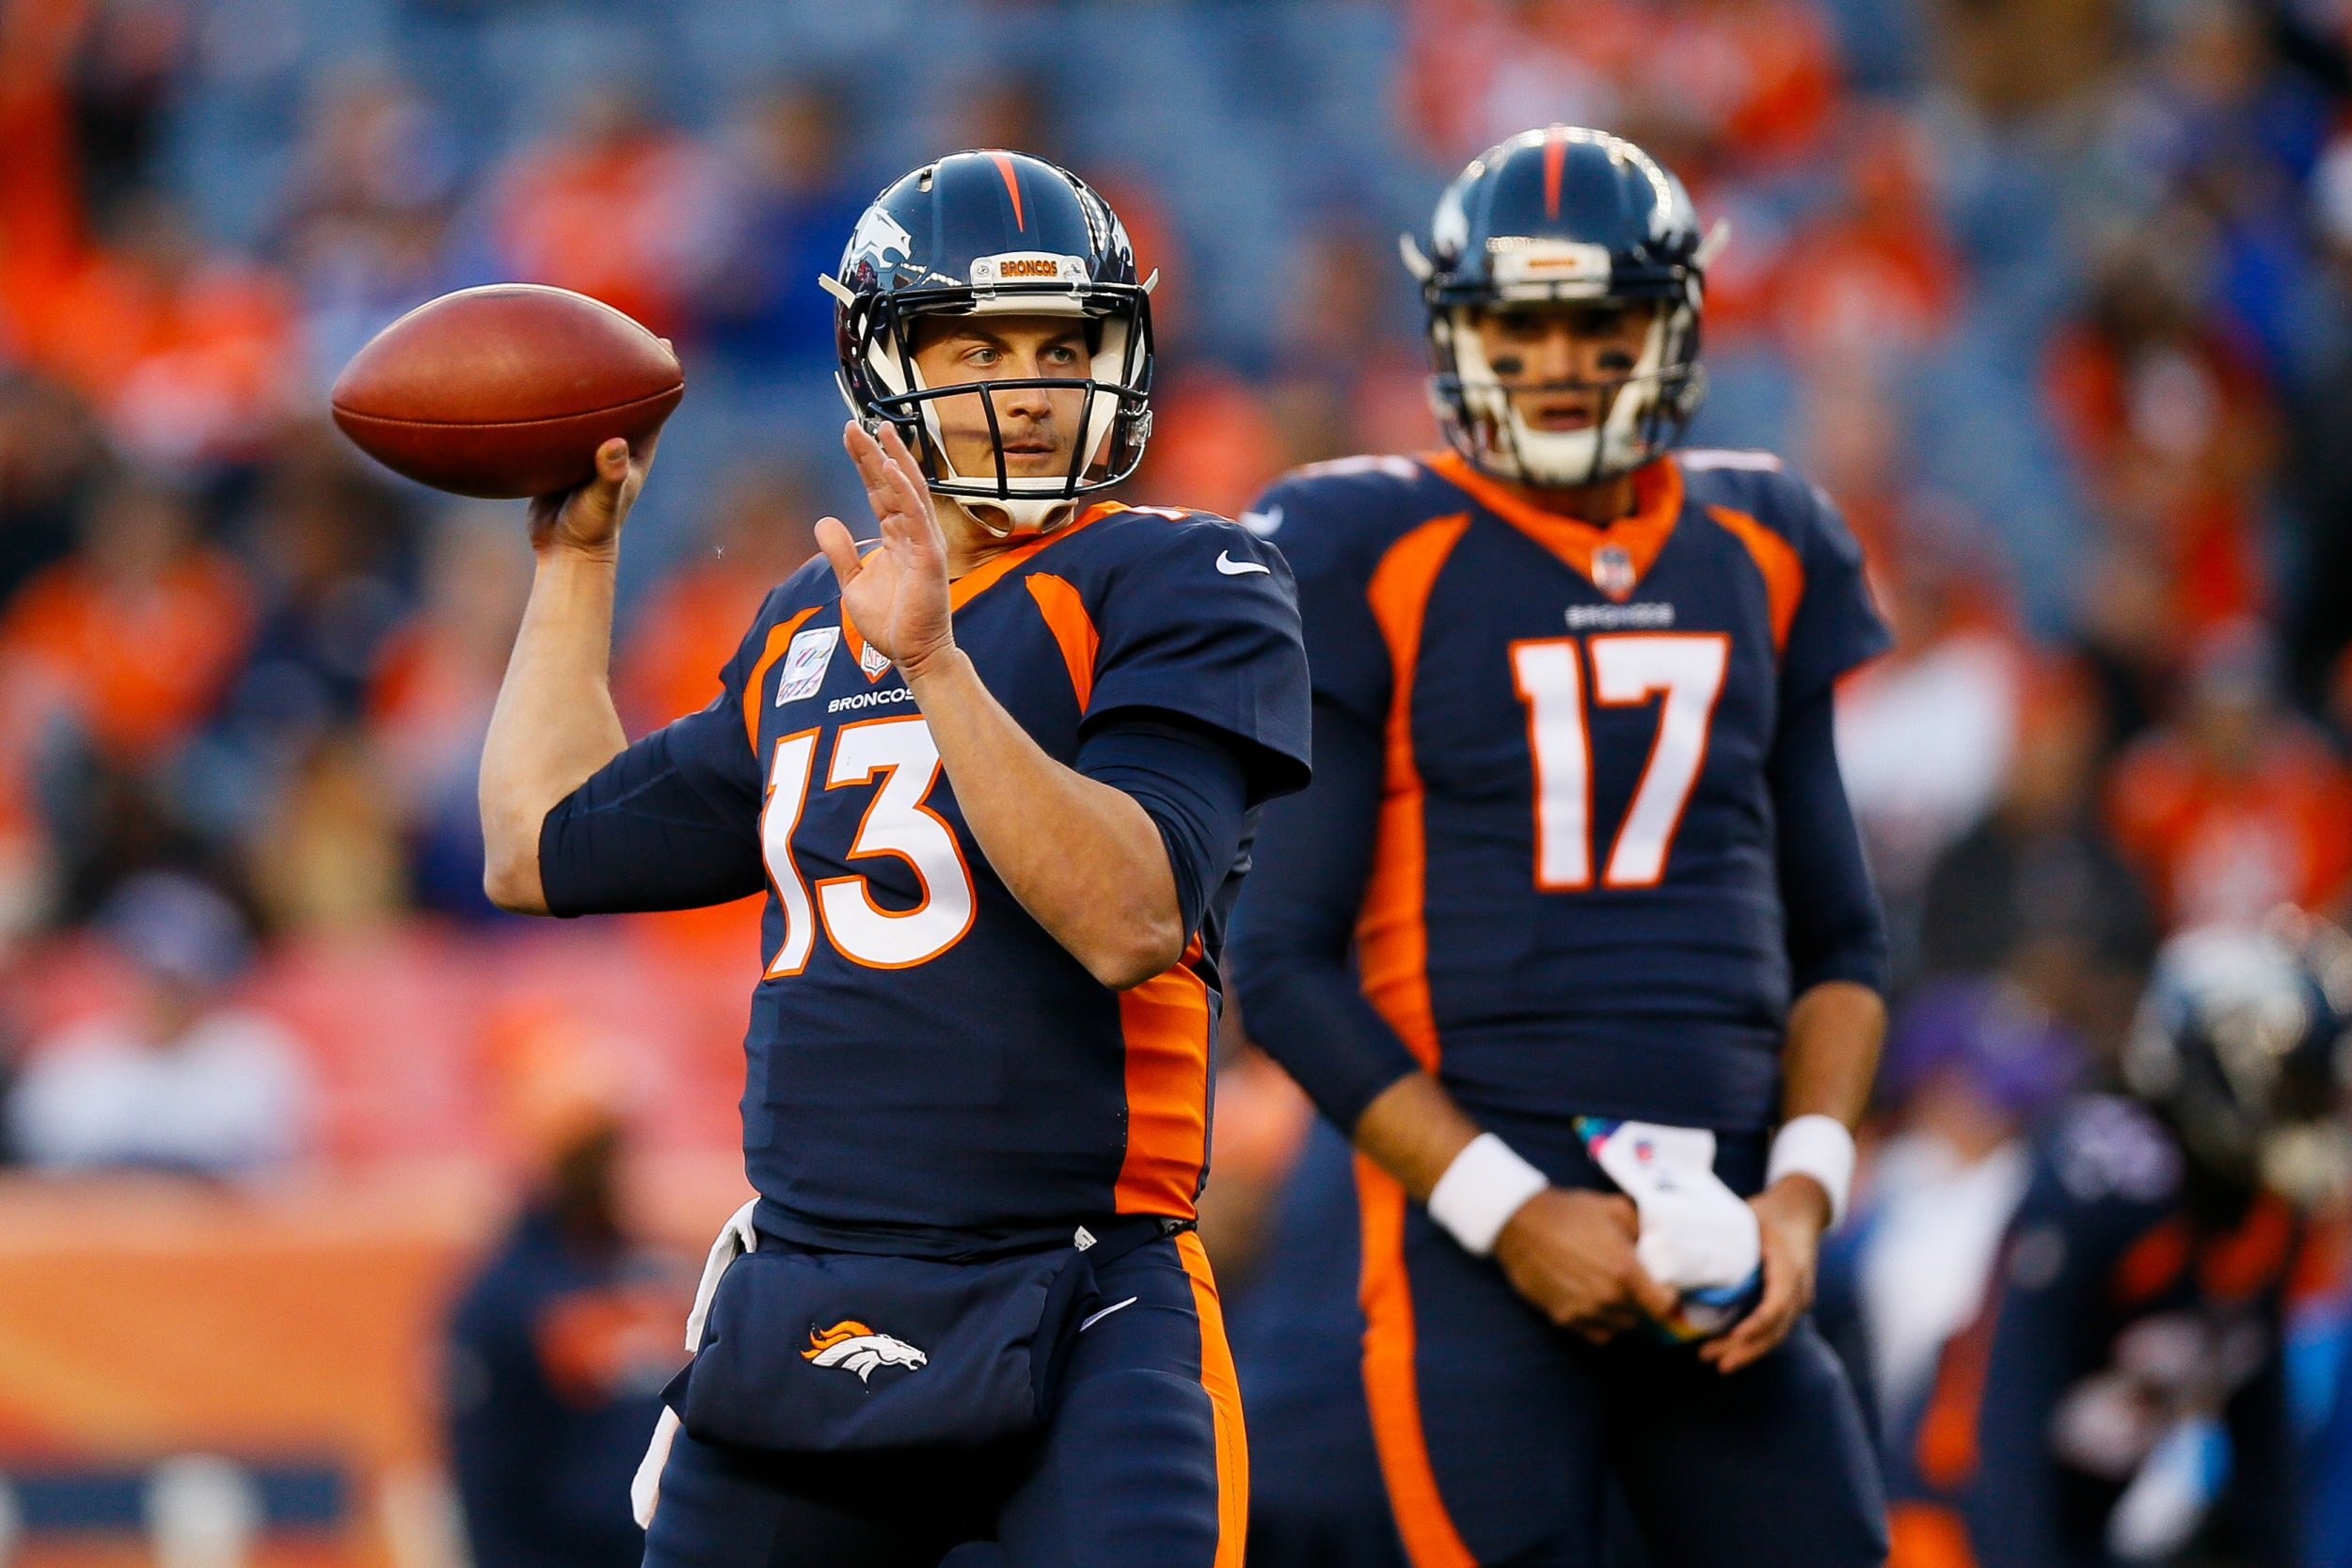 Quarterback Trevor Siemian of the Denver Broncos, left, with teammate Brock Osweiler, right, at Mile High, Denver, October 15.